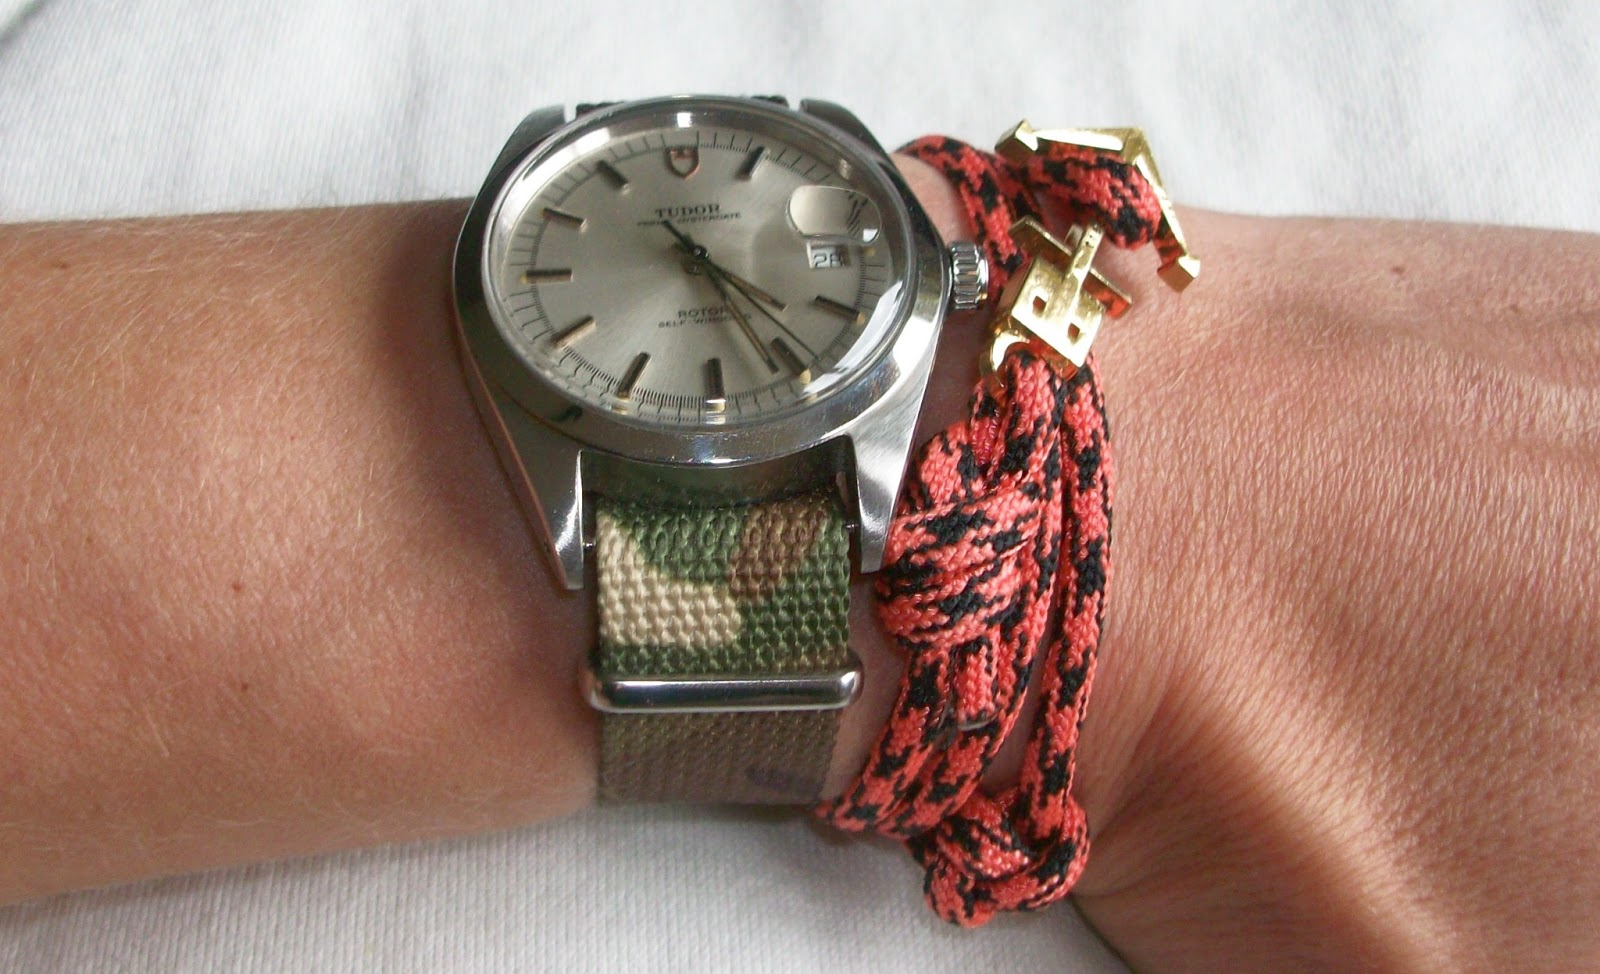 ecef63c472 That give a vintage watch a certain coolness. I have a blue-red strap at my  vintage Omega Watch and a camouflage strap at my vintage Tudor ...